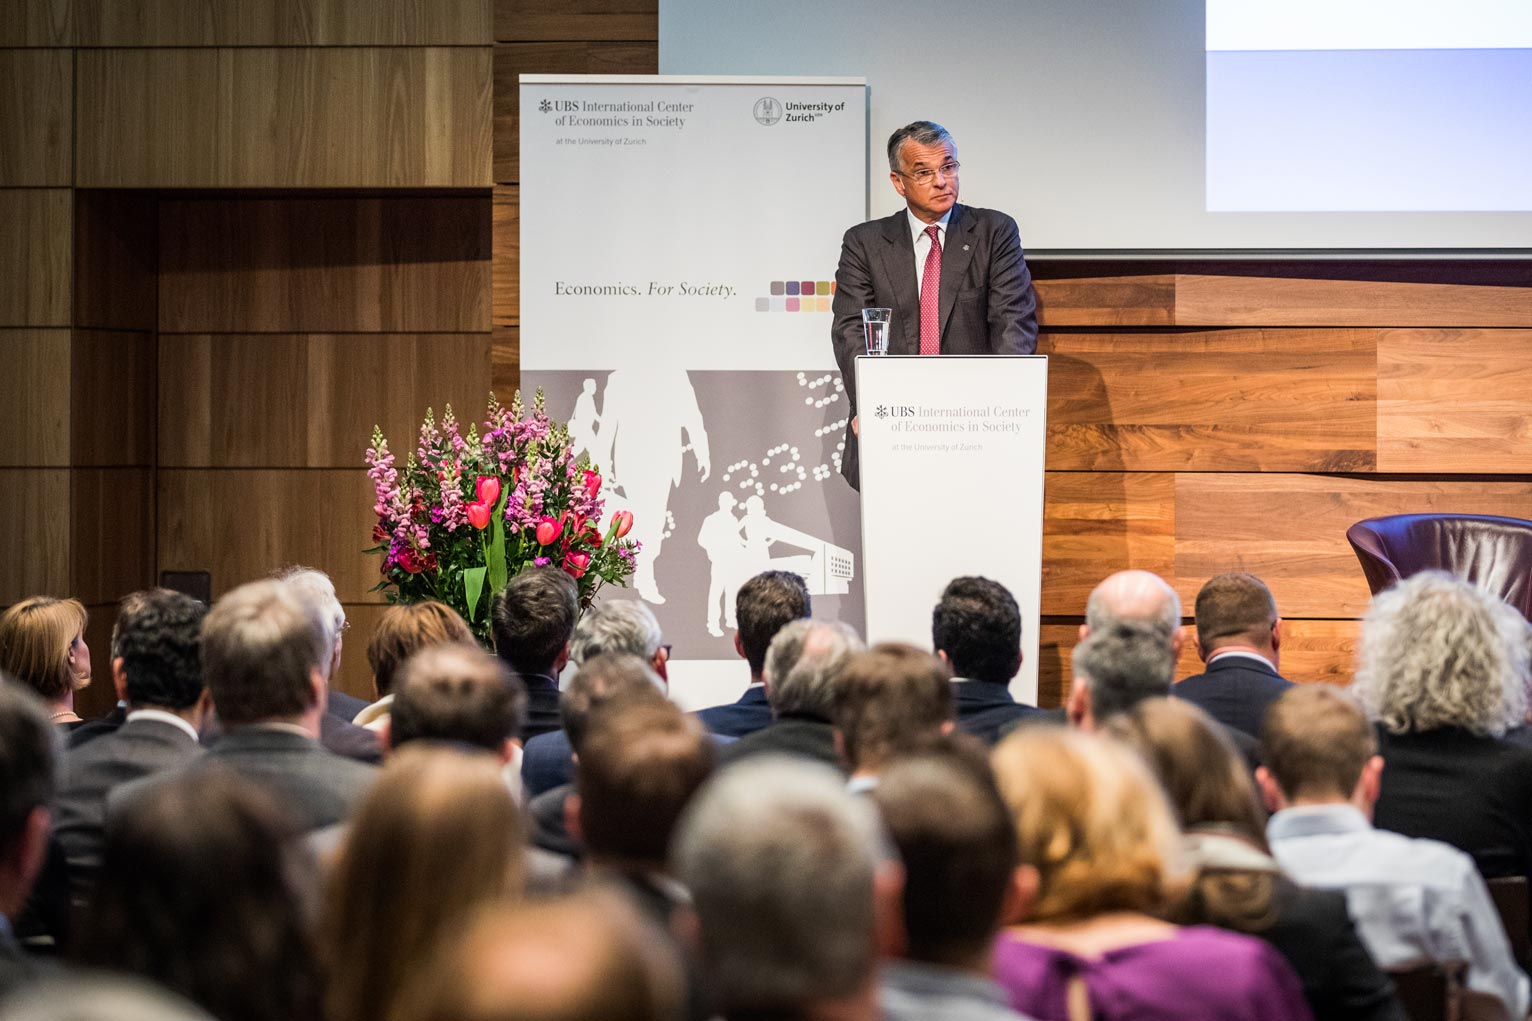 UBS Group CEO Sergio Ermotti delivering a keynote at the UBS Center Podium on the future of Swiss Finance.